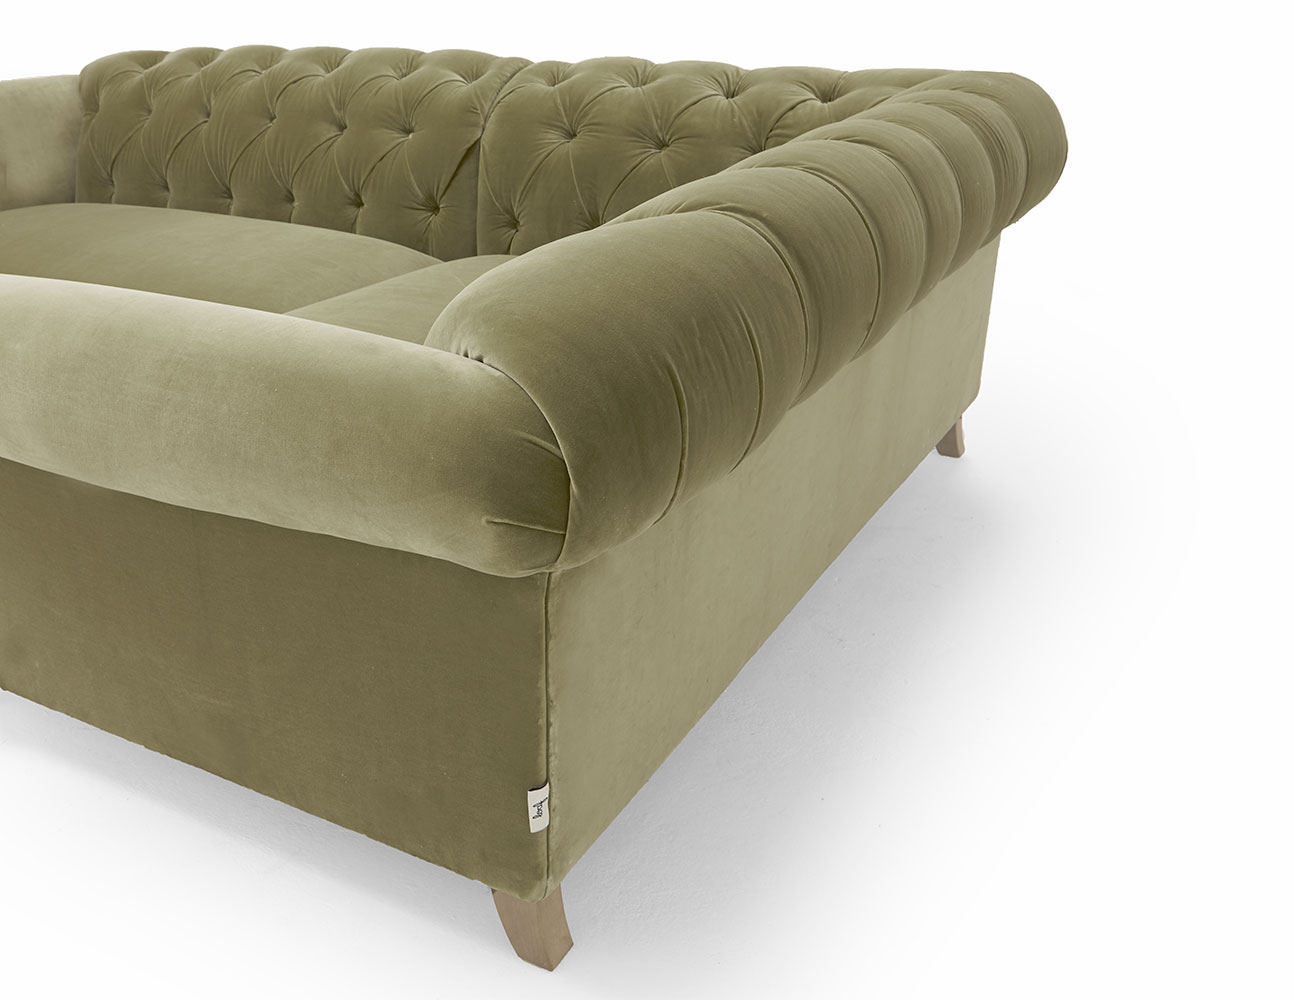 Large Left Hand Dixie Corner Sofa in Thatch house fabric